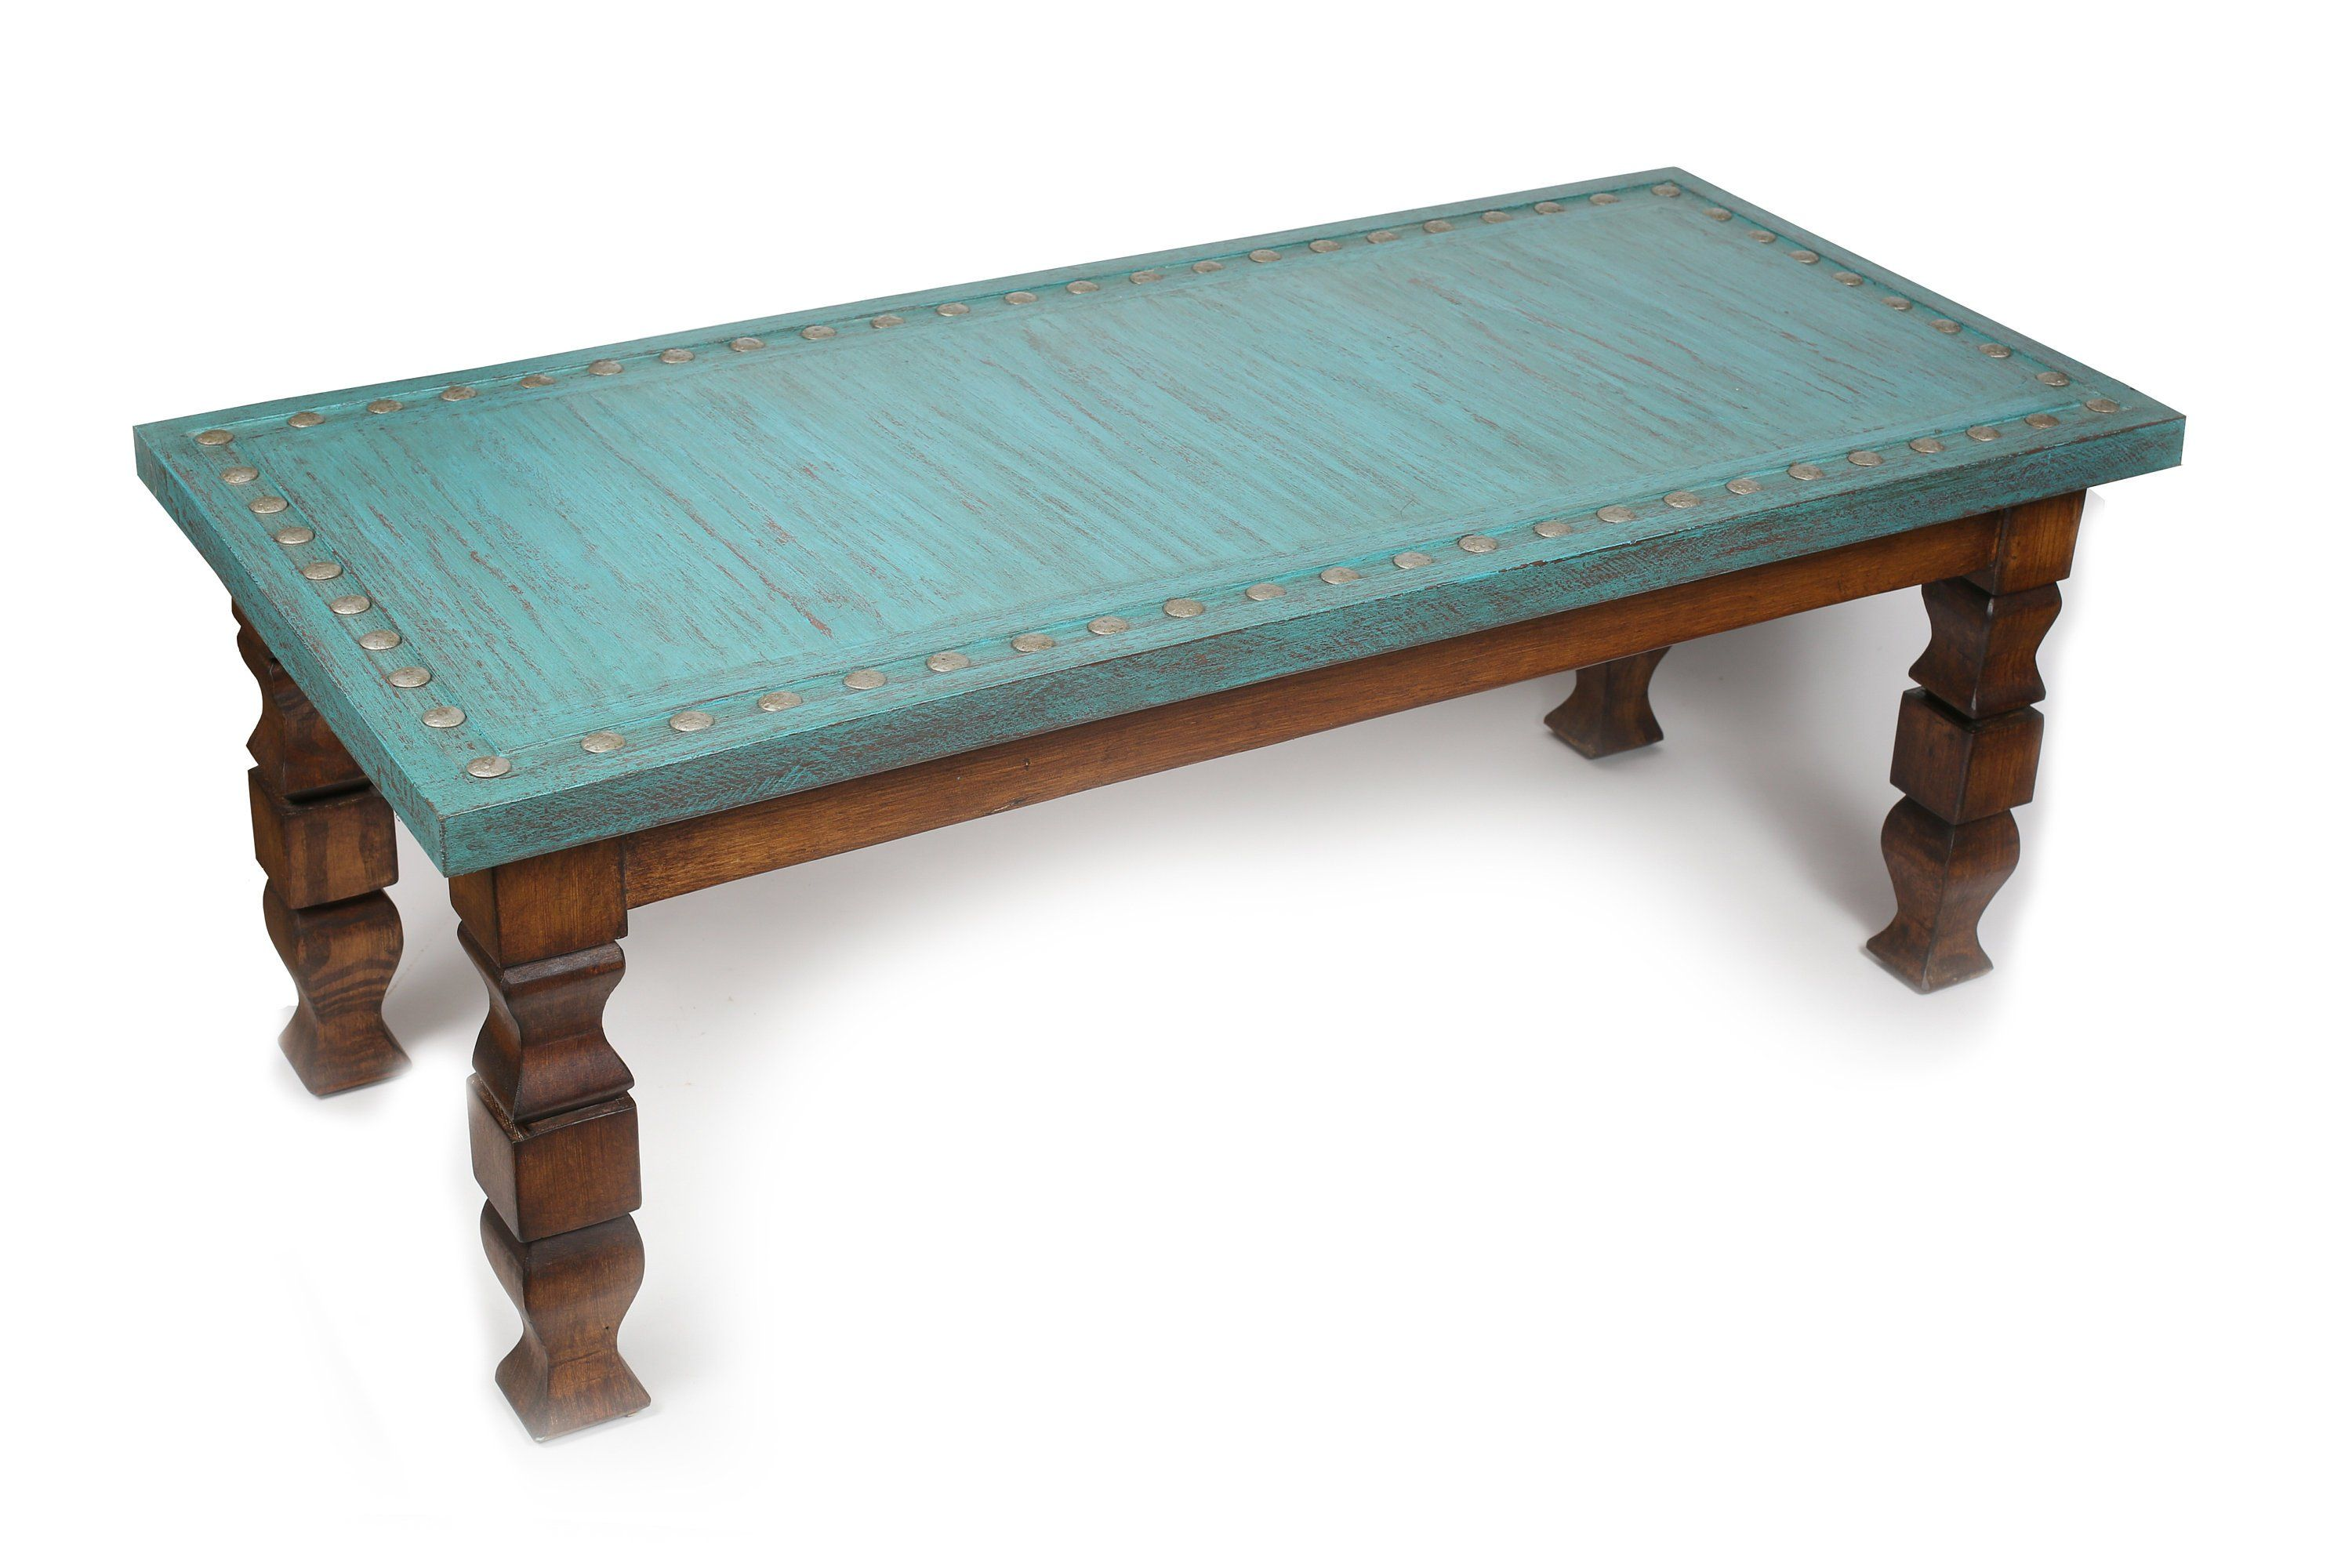 Silver Trails Turquoise Coffee Table 48l X 24w X 17h In Western